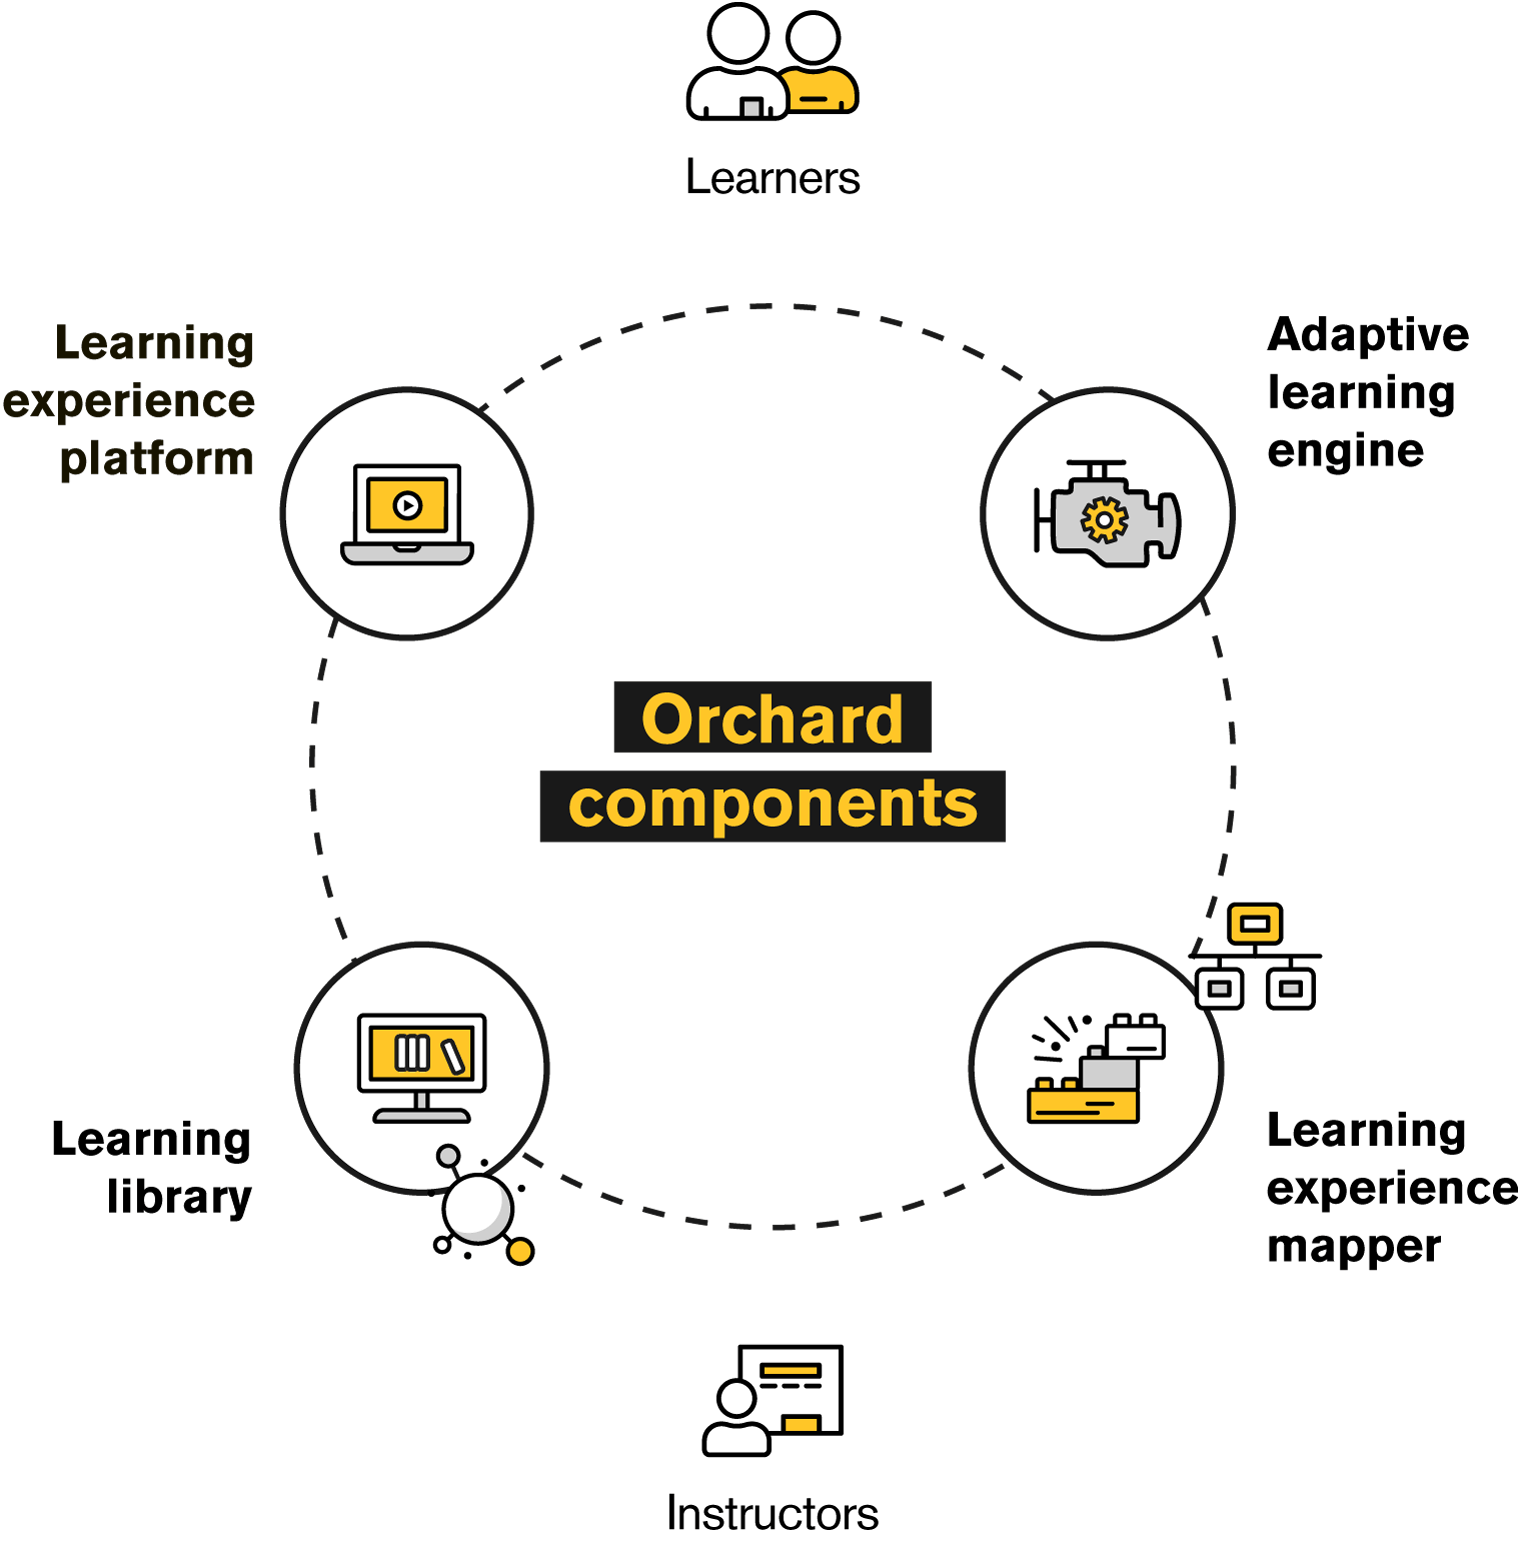 Graphic illustrating how the components of Orchard fit together